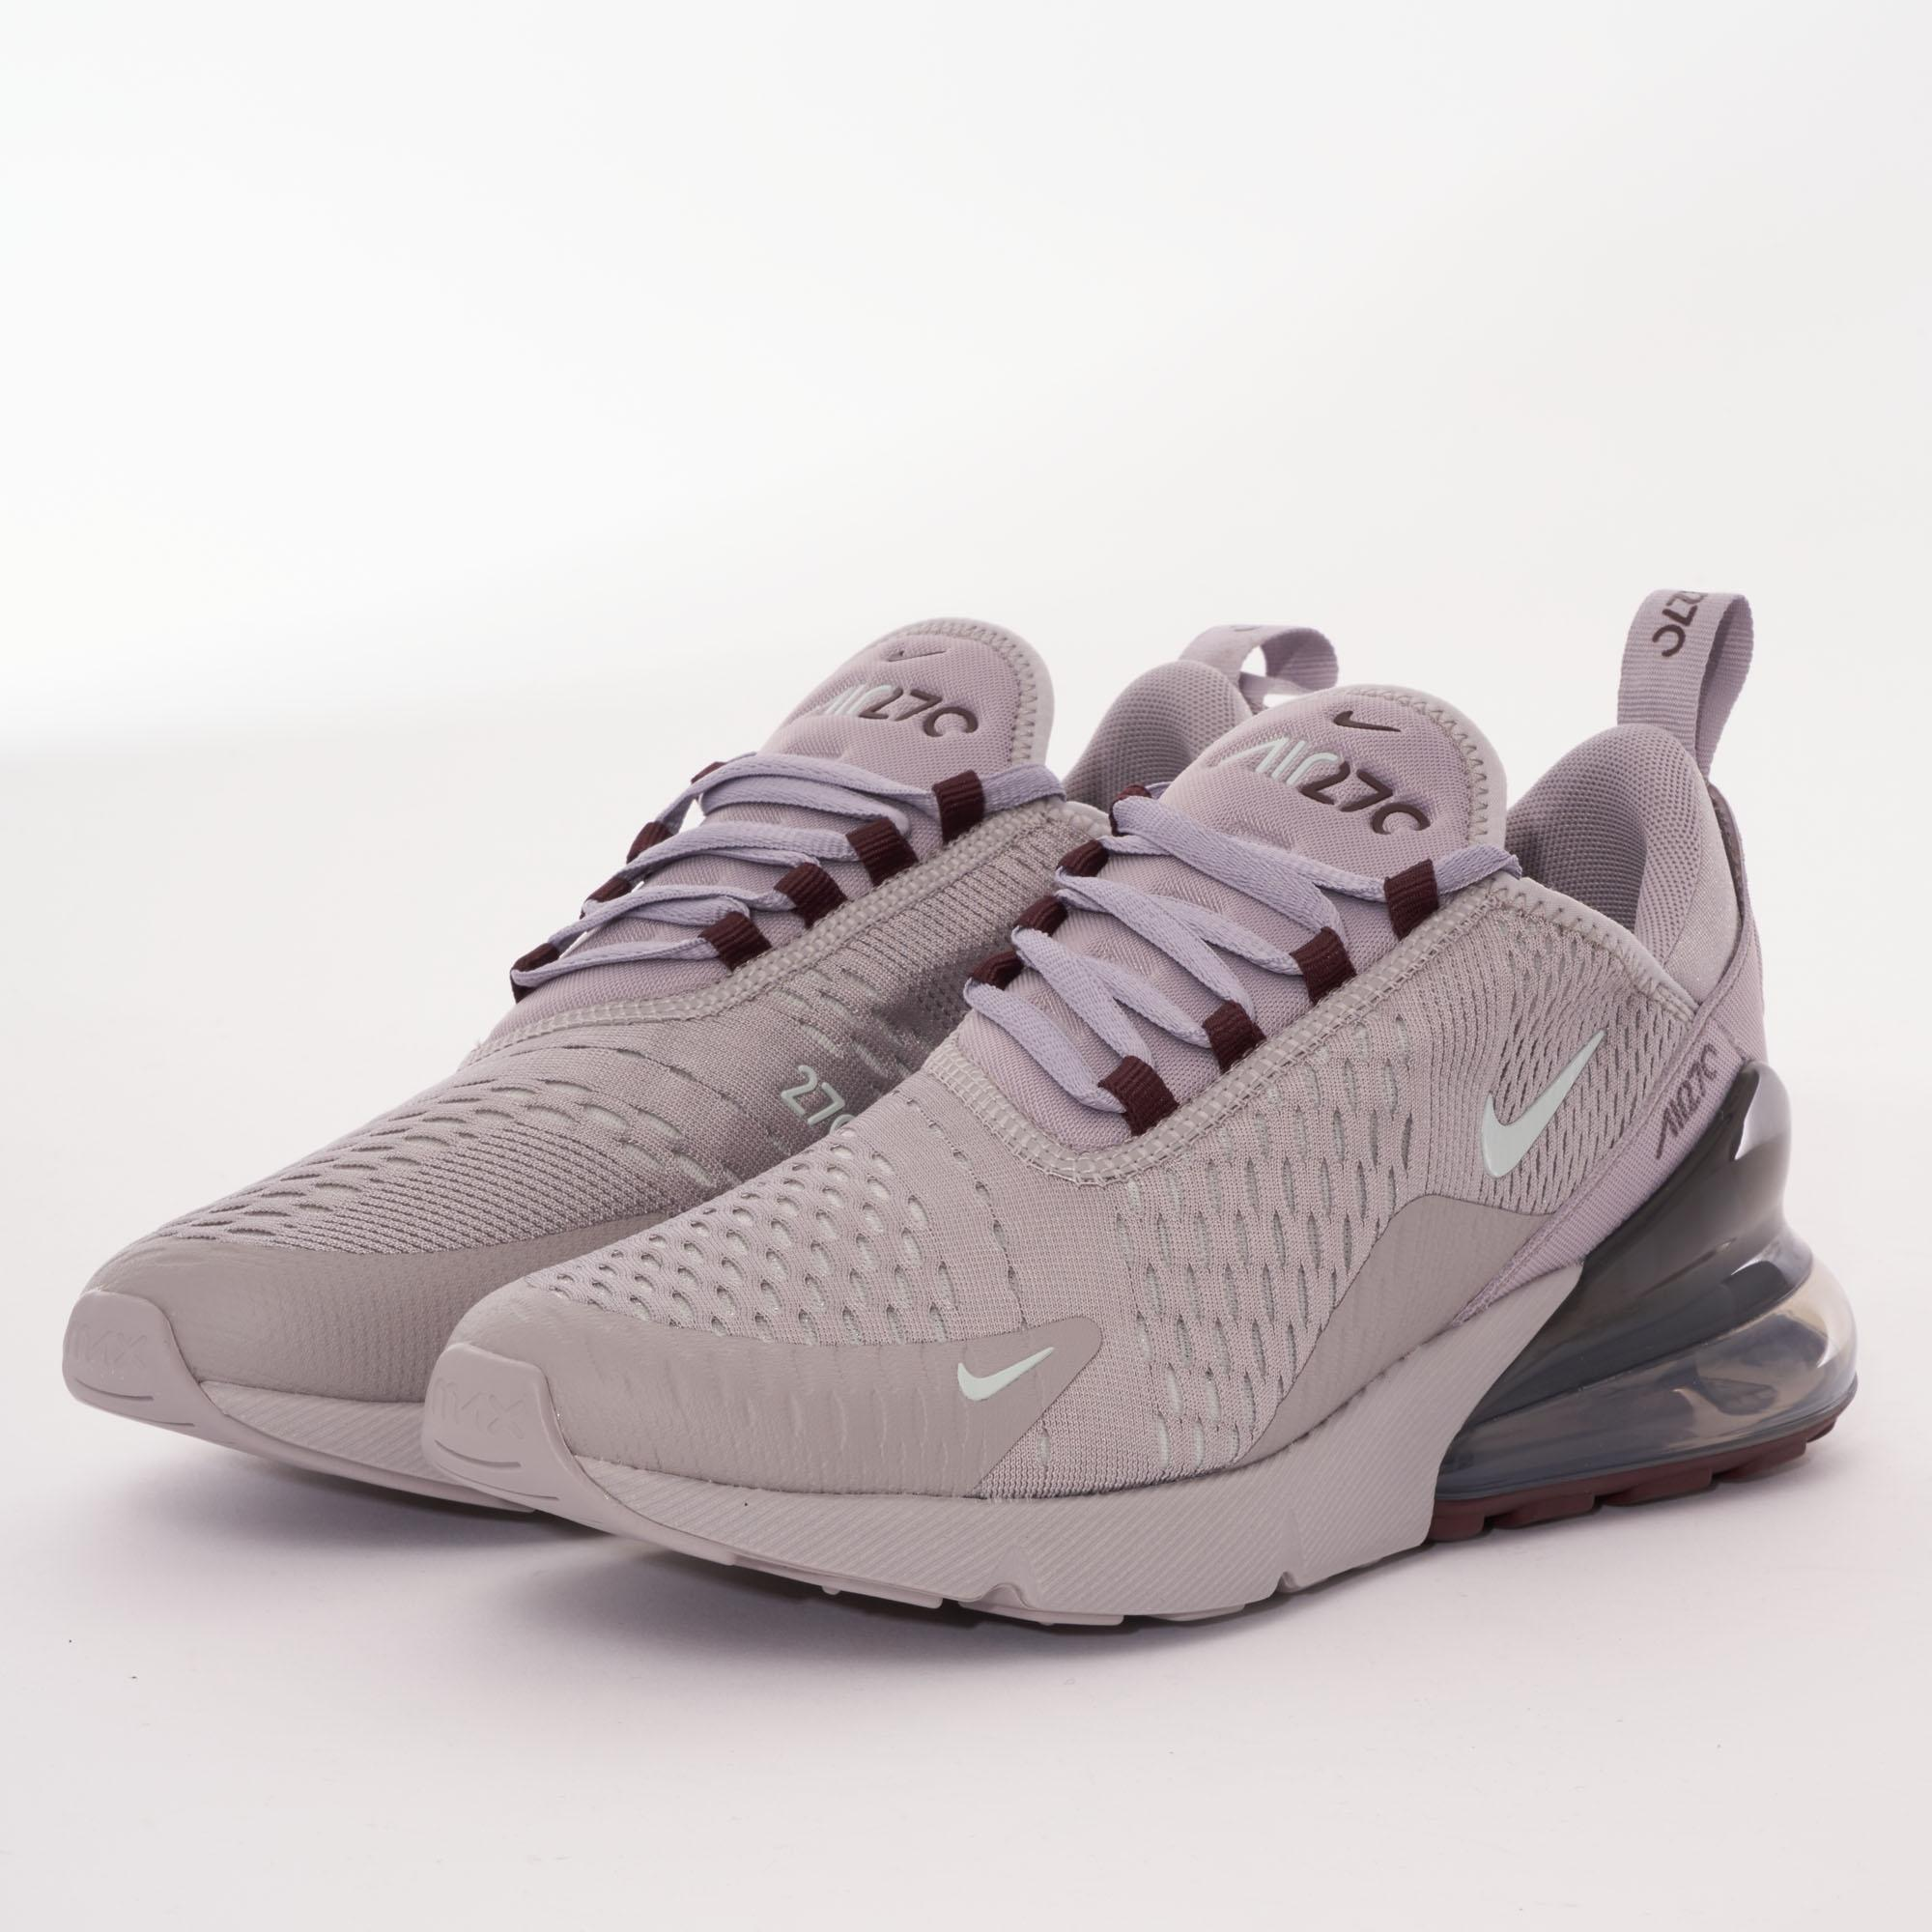 3cc4eee650 Nike Air Max 270 - Atmosphere Grey & Light Silver in Gray for Men - Lyst